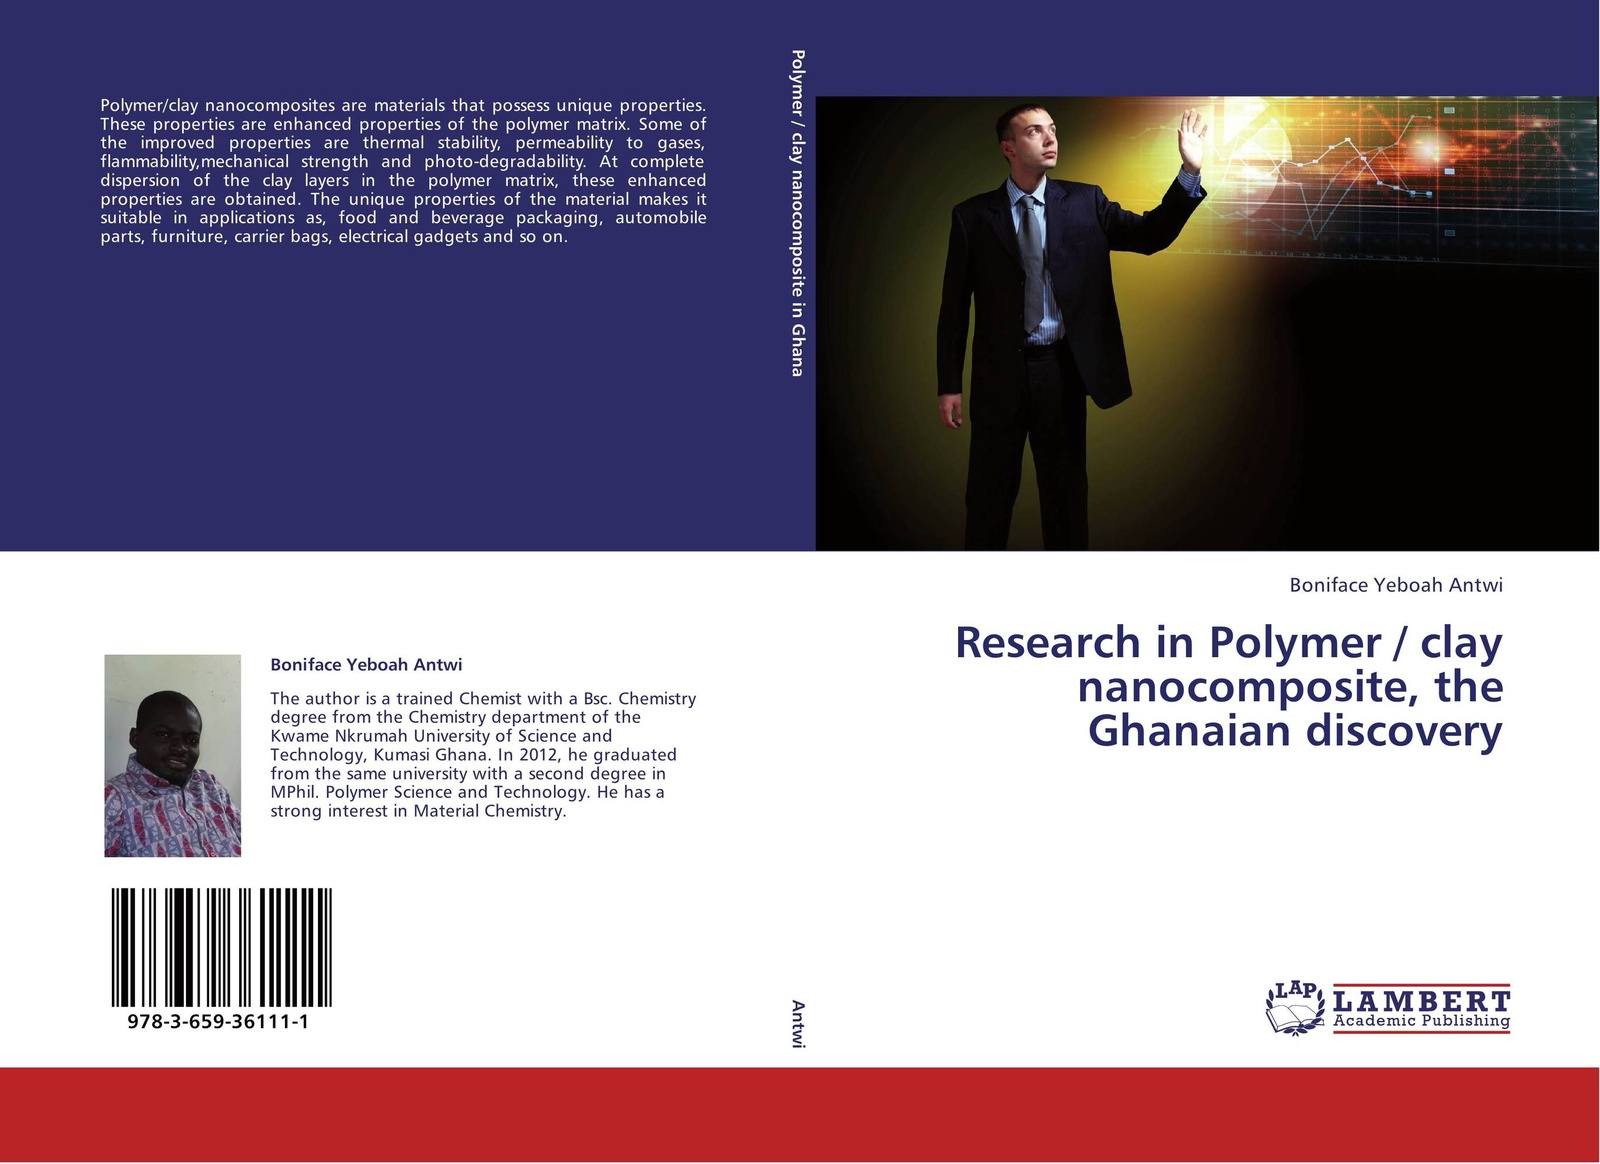 Boniface Yeboah Antwi Research in Polymer / clay nanocomposite, the Ghanaian discovery unique packaging